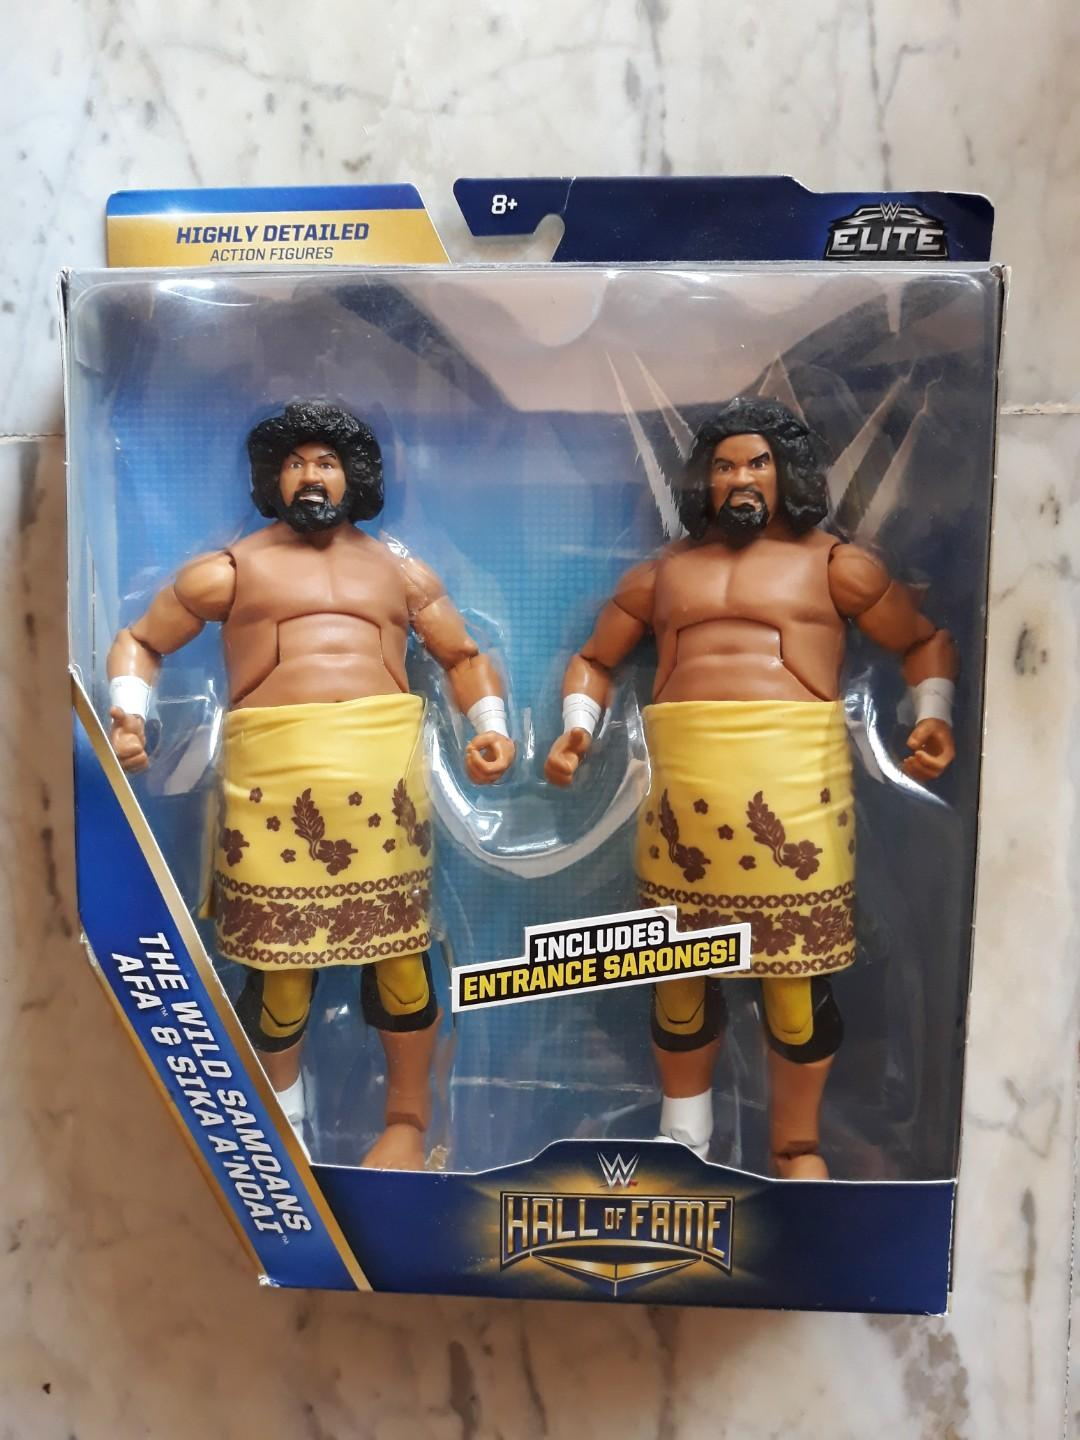 Wrestling Bettwäsche Wwe Wrestling Mattel Elite Exclusive Hall Of Fame Wild Samoans Figures Afa Sika Sport